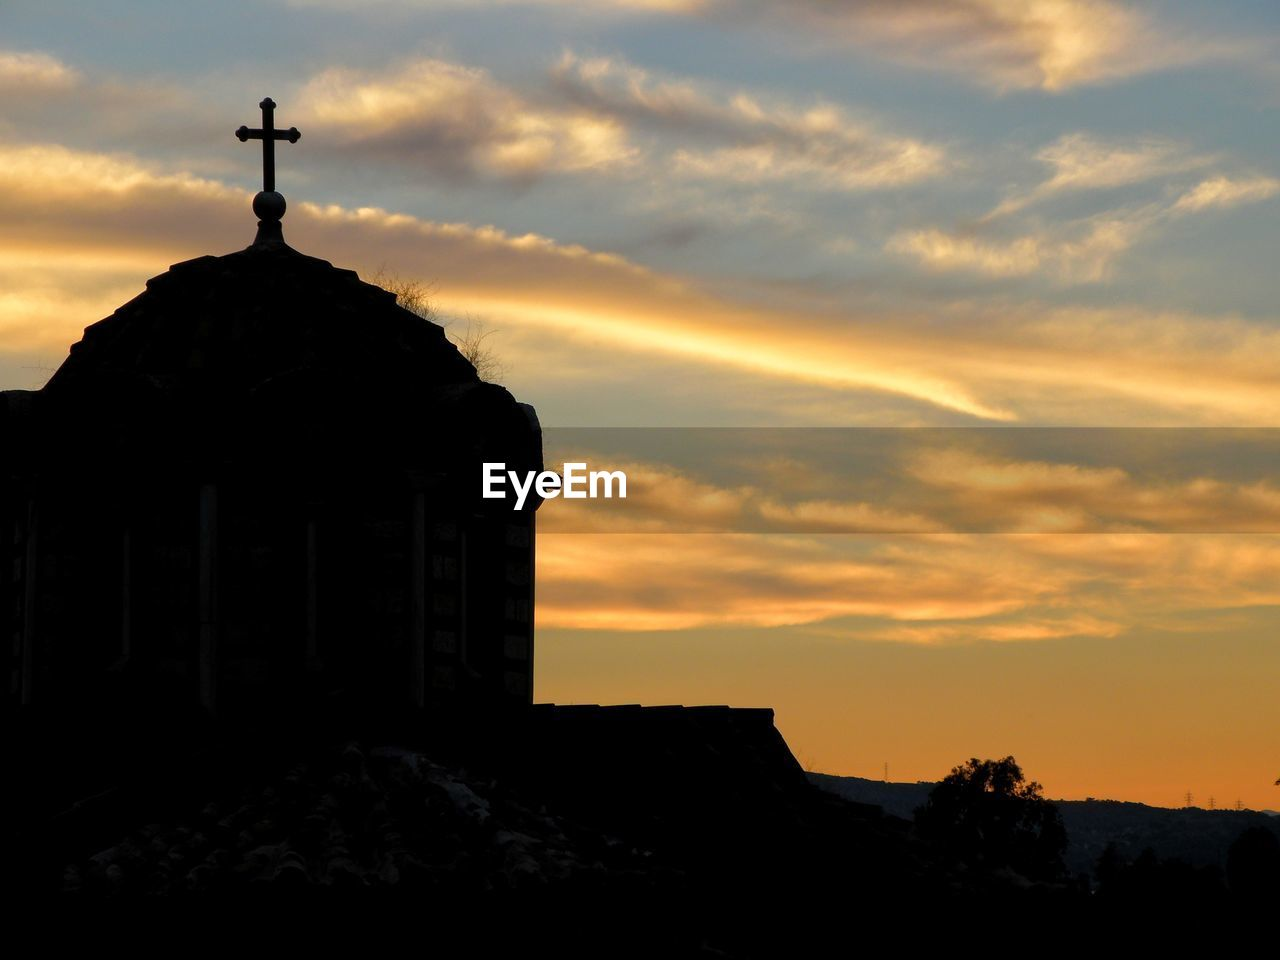 Silhouette church against sky during sunset